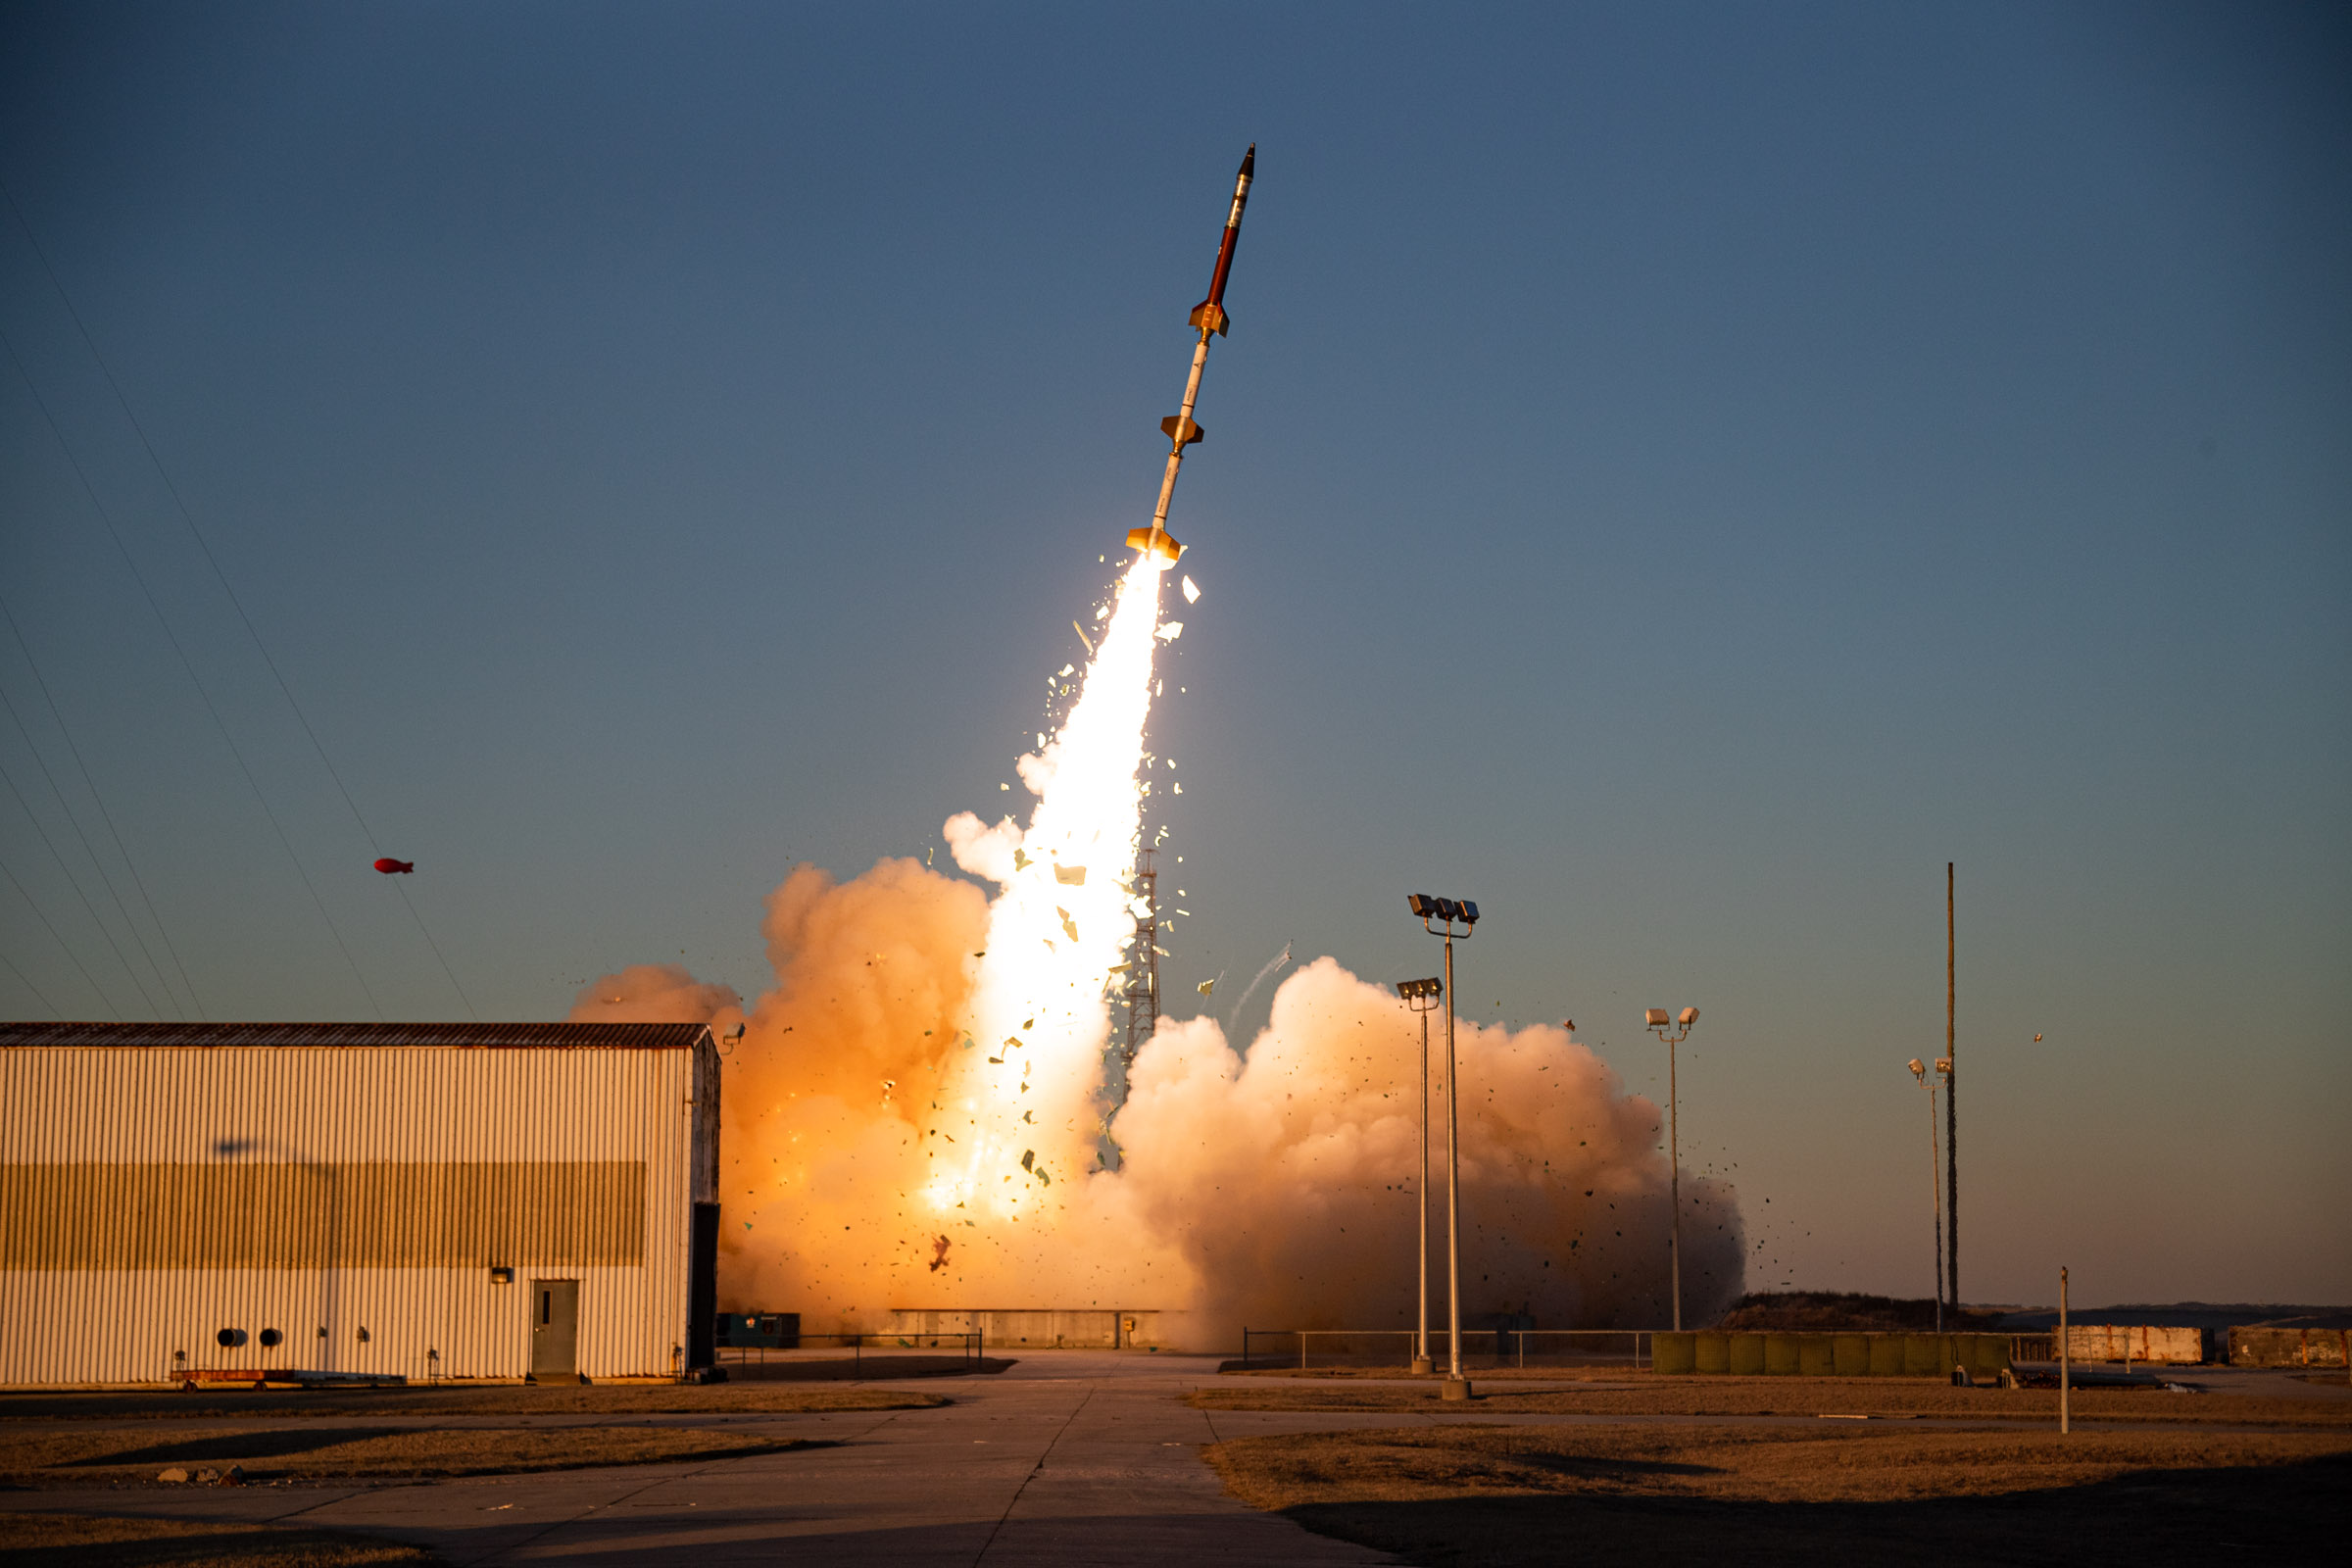 A Terrier-Terrier-Oriole sounding rocket, carrying an experimental research payload for the Air Force Research Laboratory, launches March 3 from NASA Wallops Flight Facility on Wallops Island, Va. (NASA Wallops)